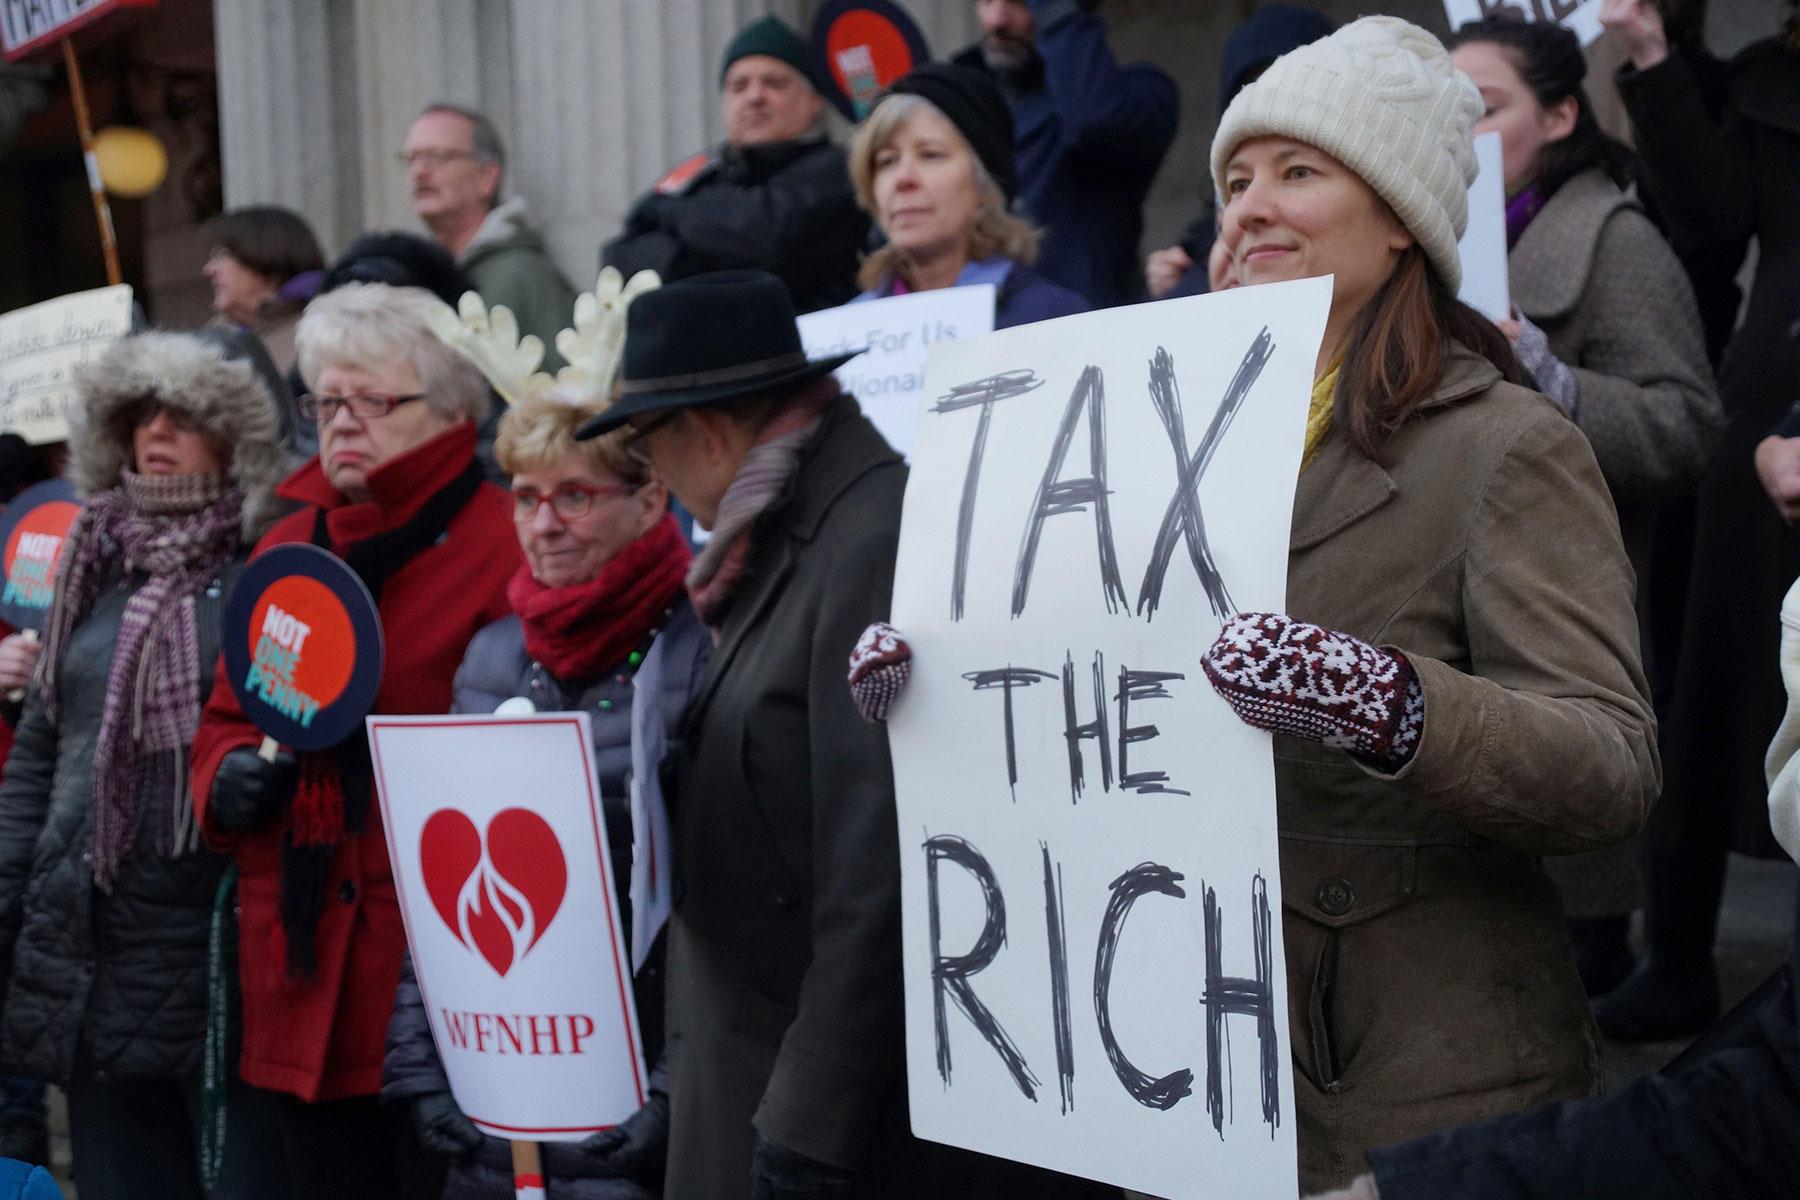 121717_taxmarch_028